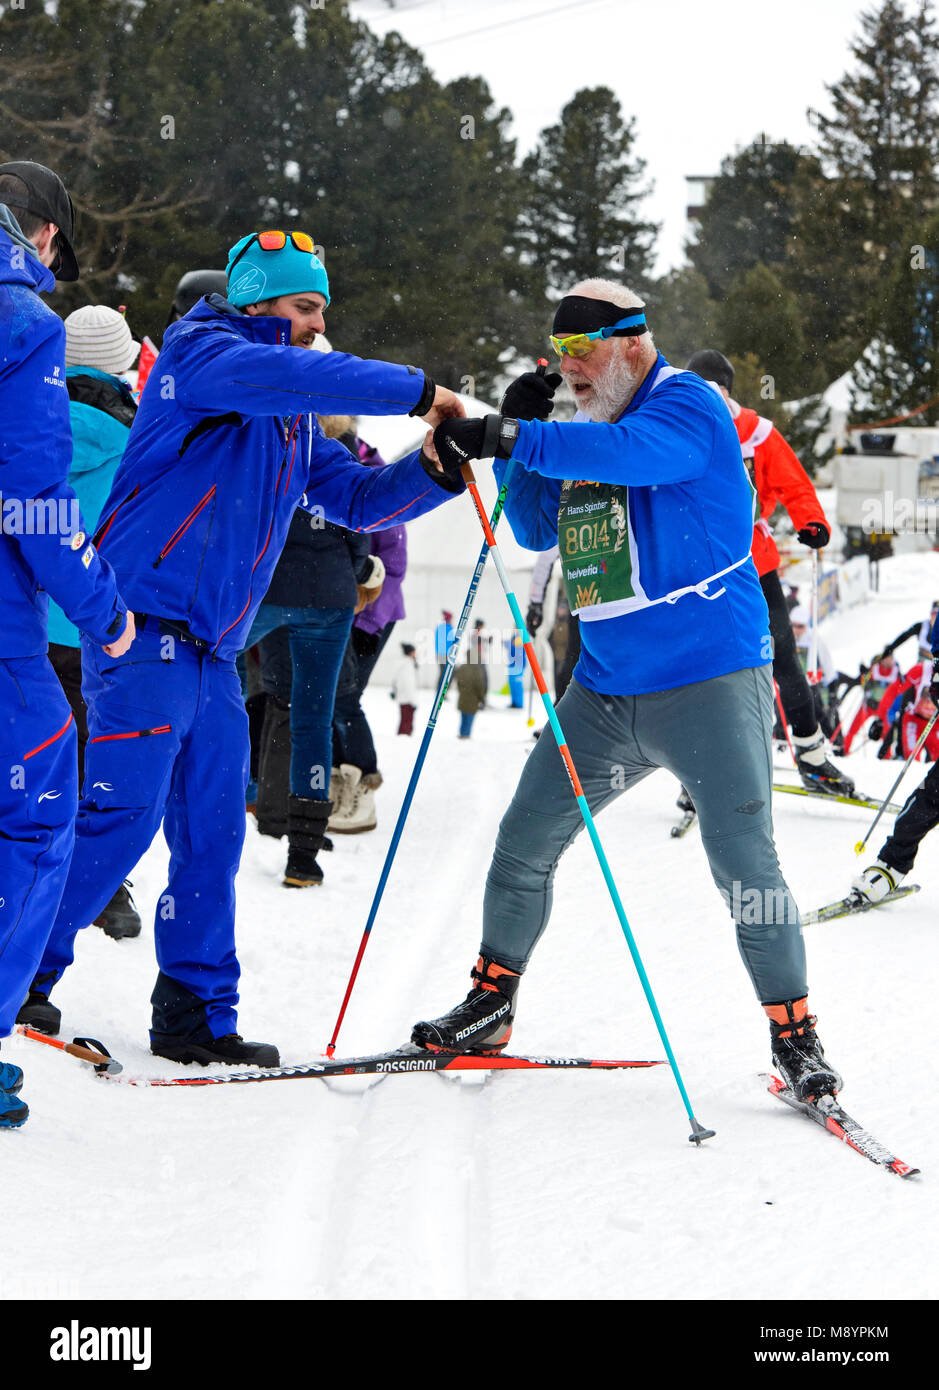 Cross country skier with a broken pole is given assistance, Engadin Skimarathon, 11 March 2018, St. Moritz, Switzerland - Stock Image